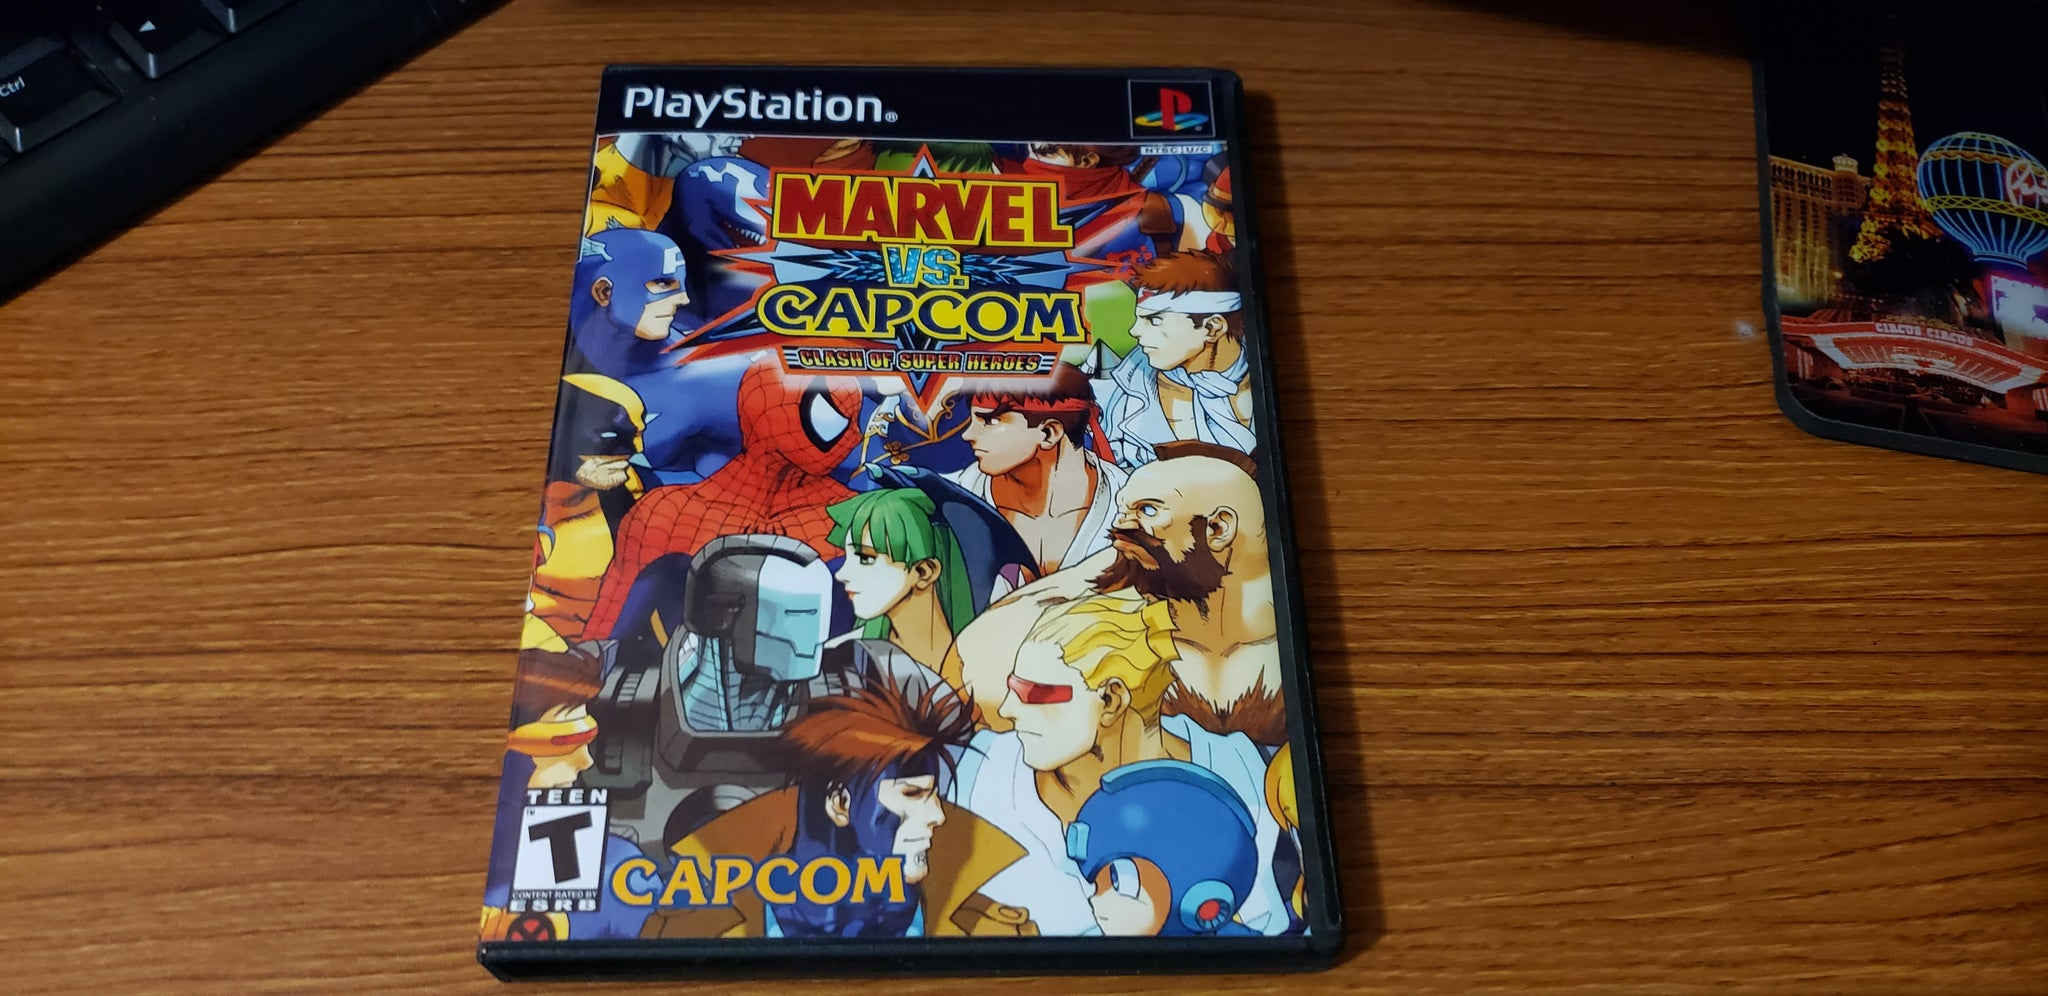 Marvel vs Capcom PS1